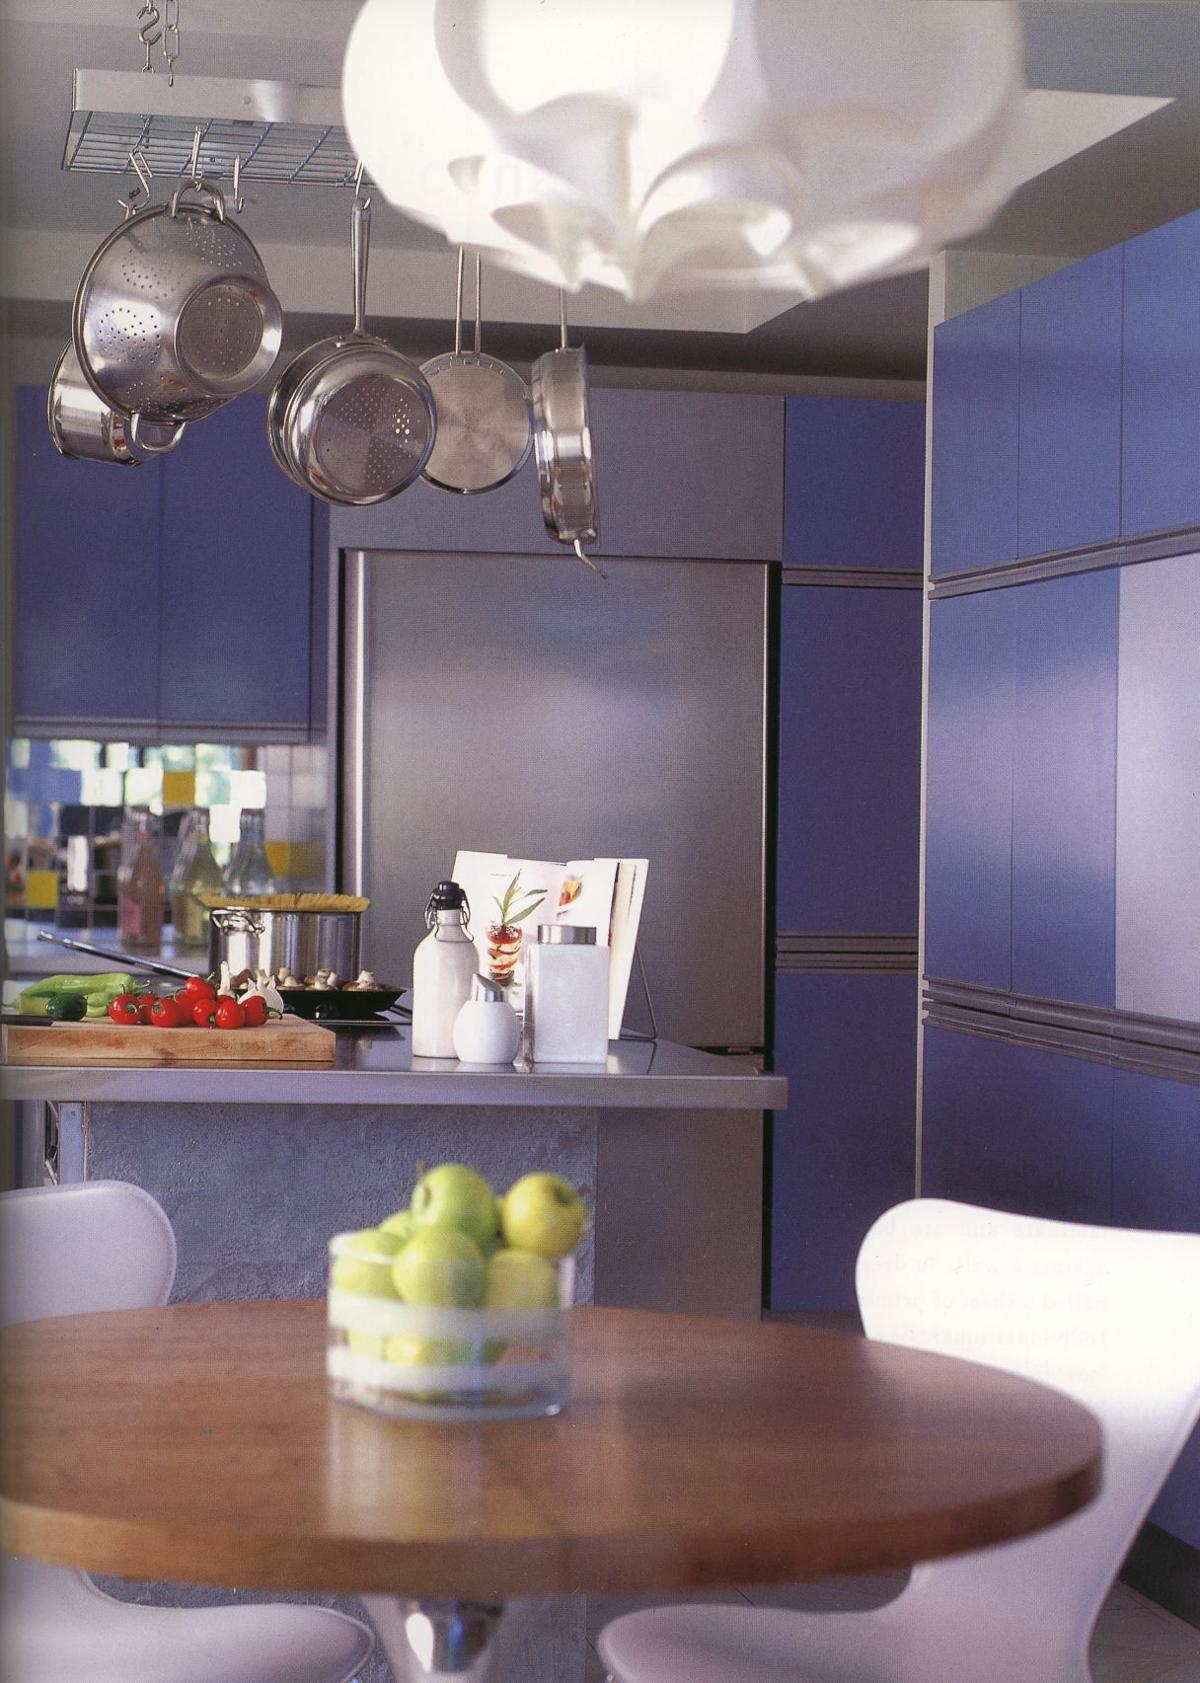 Update kitchen cabinets with paint for summer